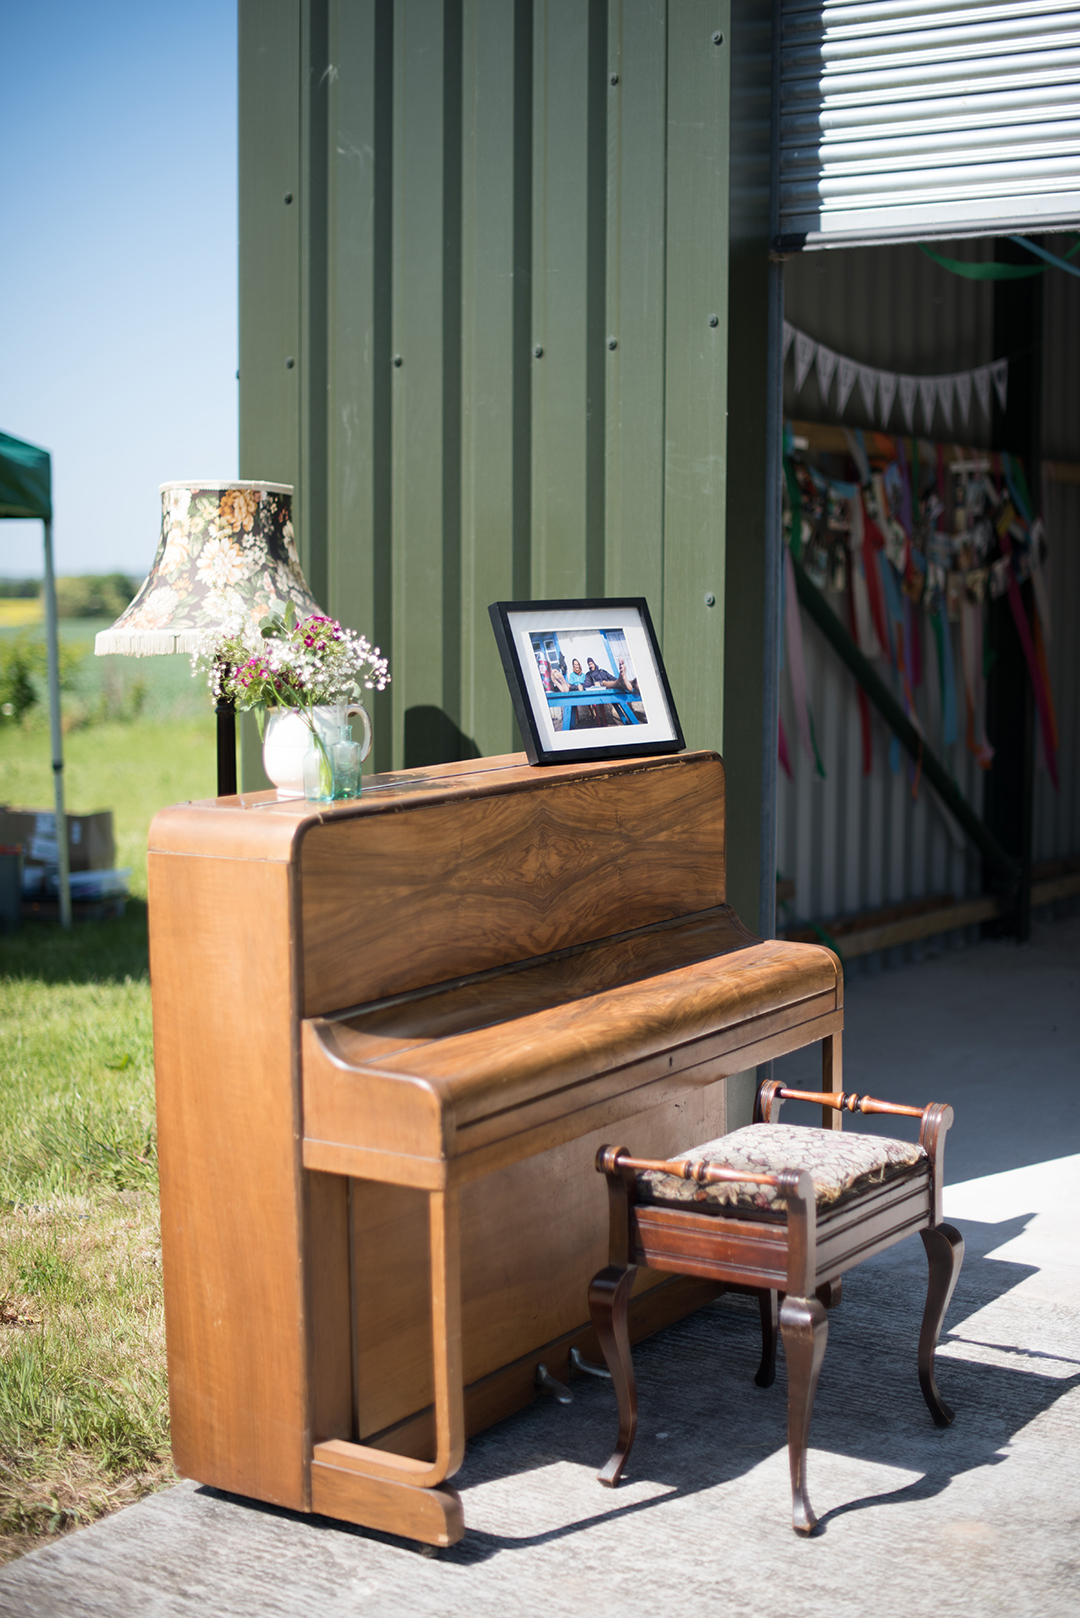 piano and decor at an outdoor wedding ceremony